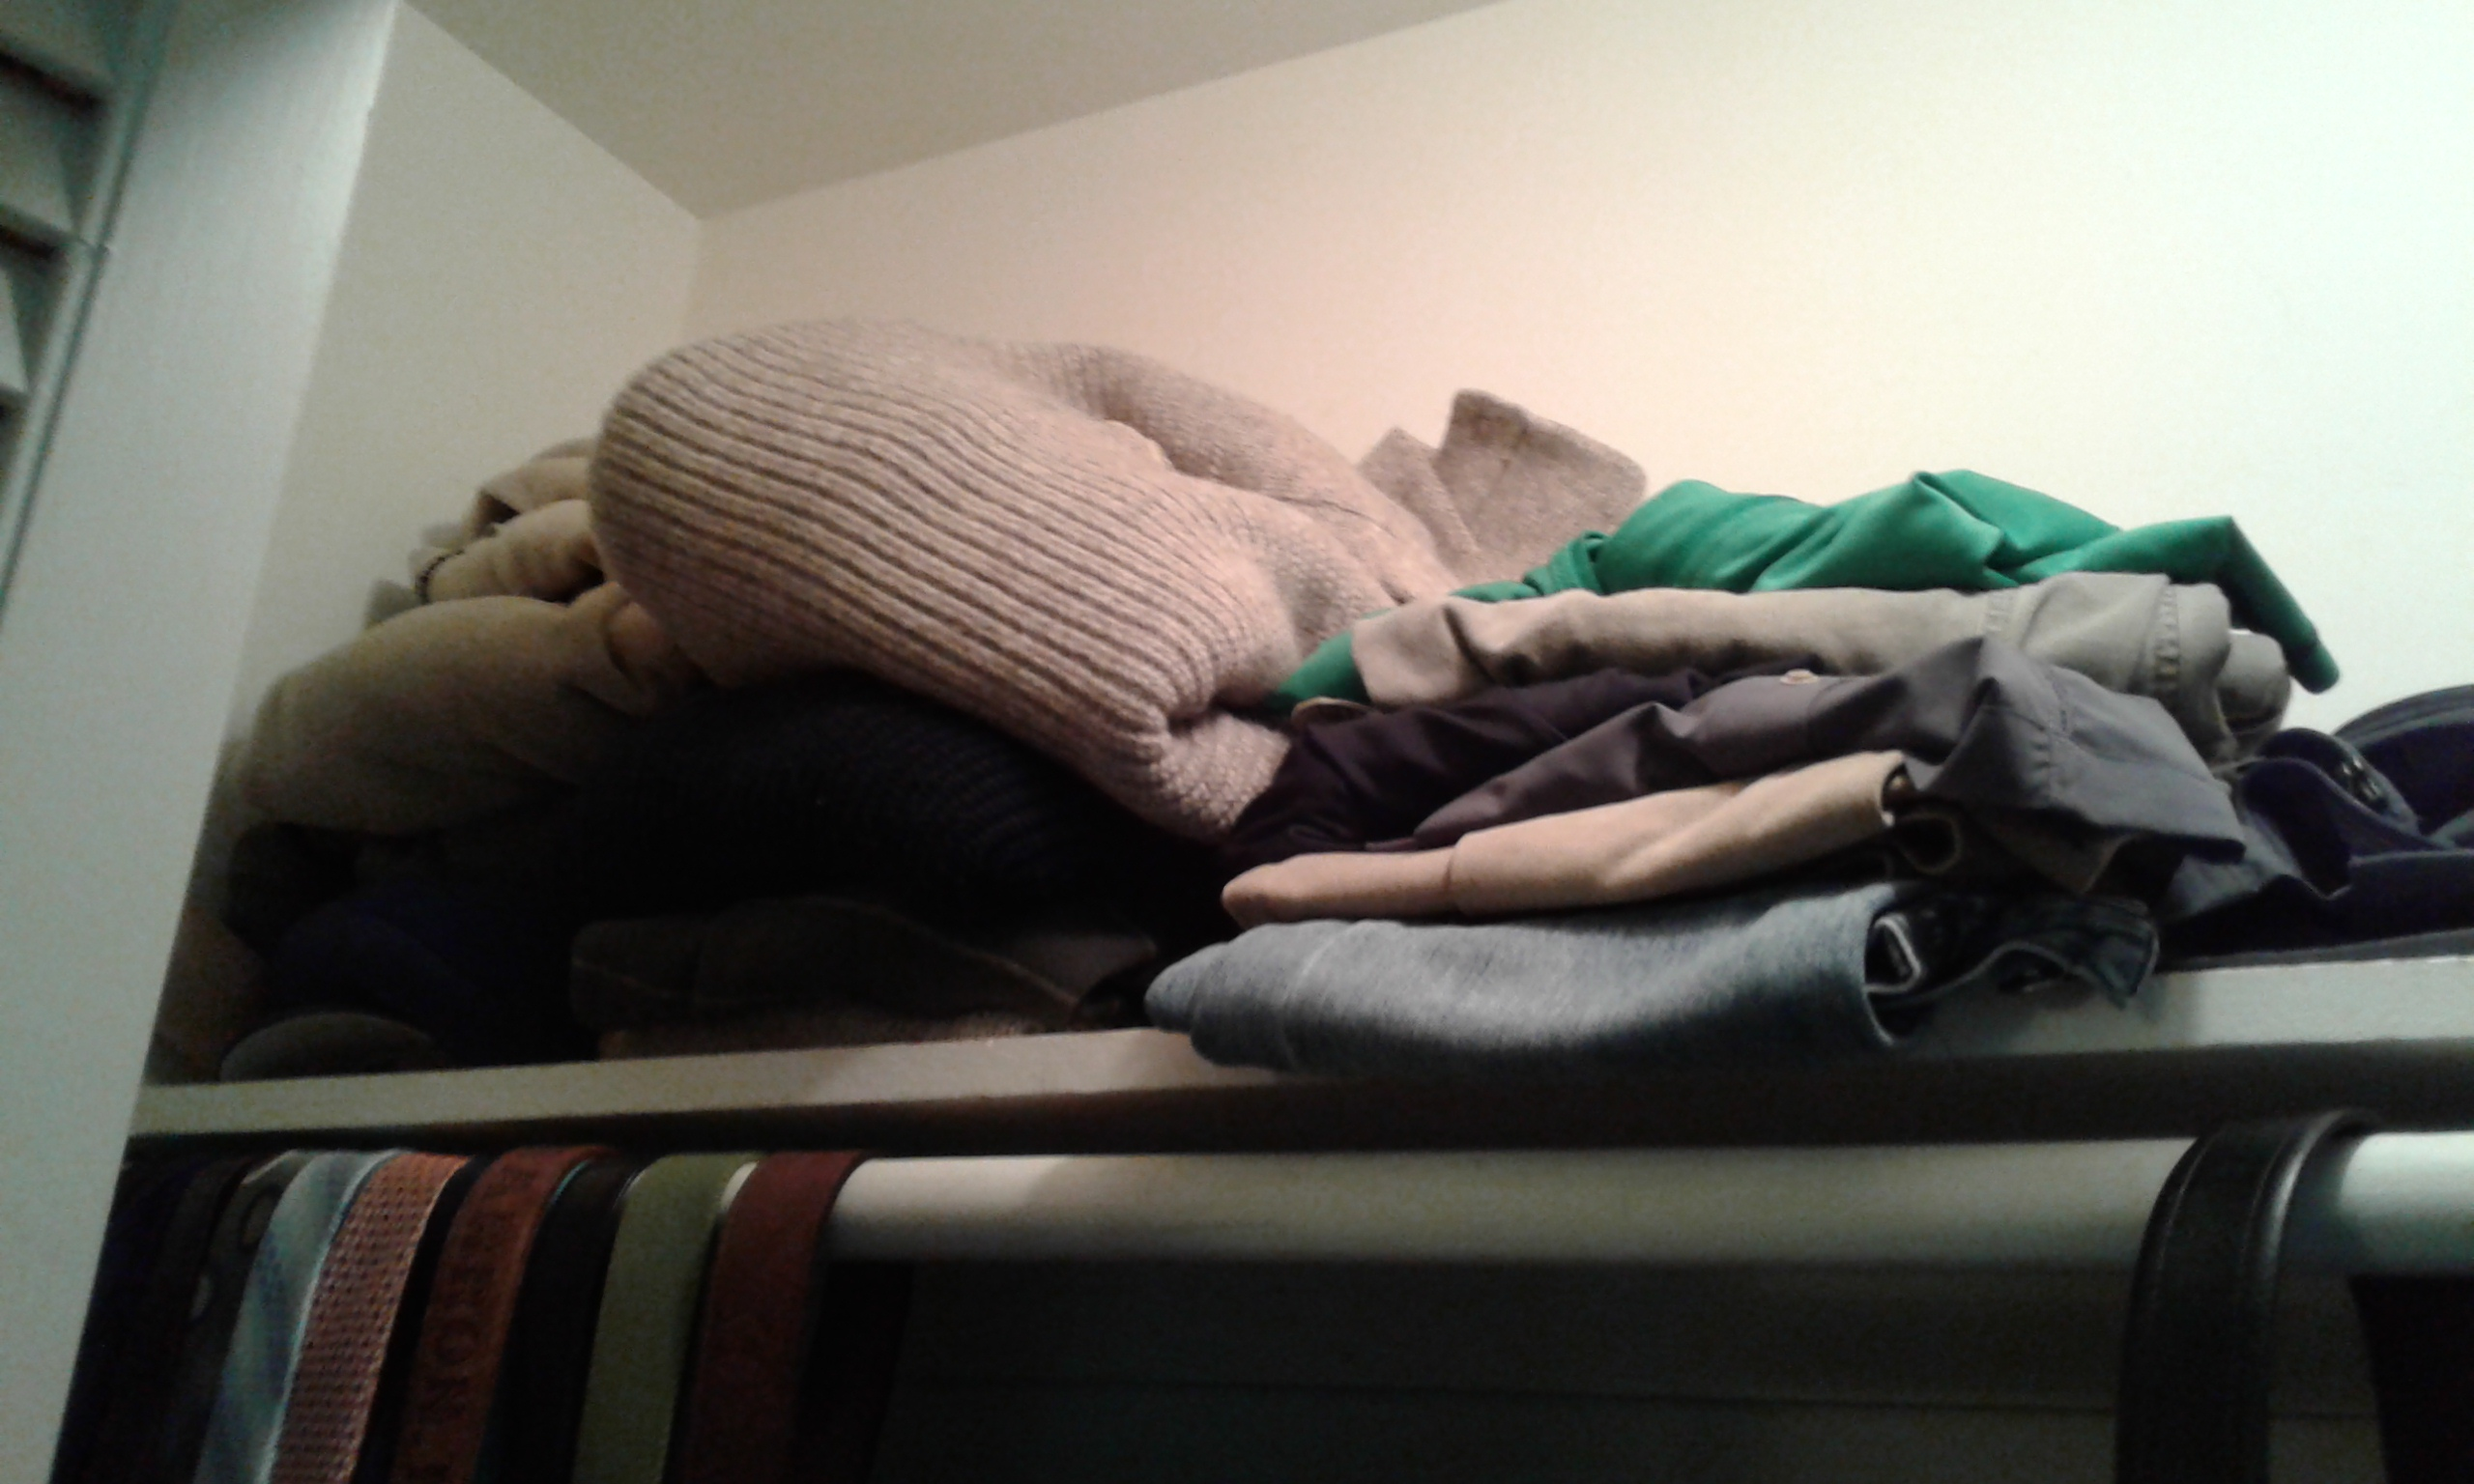 A closet shelf before we cleared its clutter and reorganized it